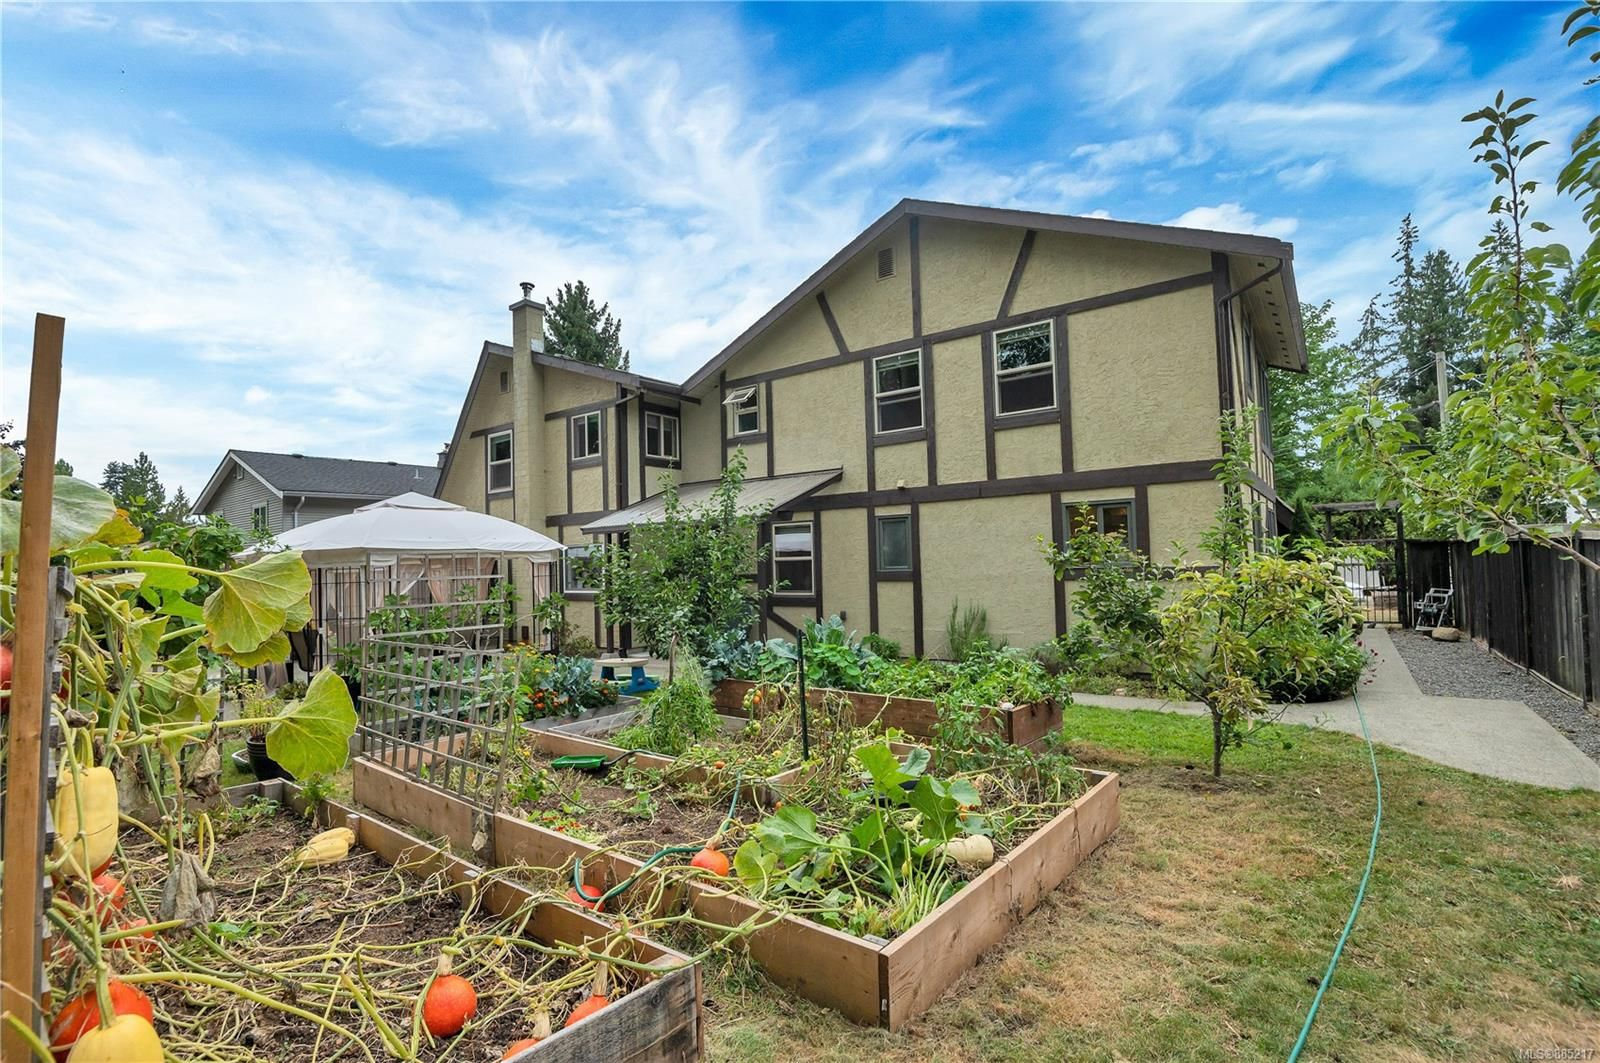 Main Photo: 2577 Copperfield Rd in : CV Courtenay City House for sale (Comox Valley)  : MLS®# 885217